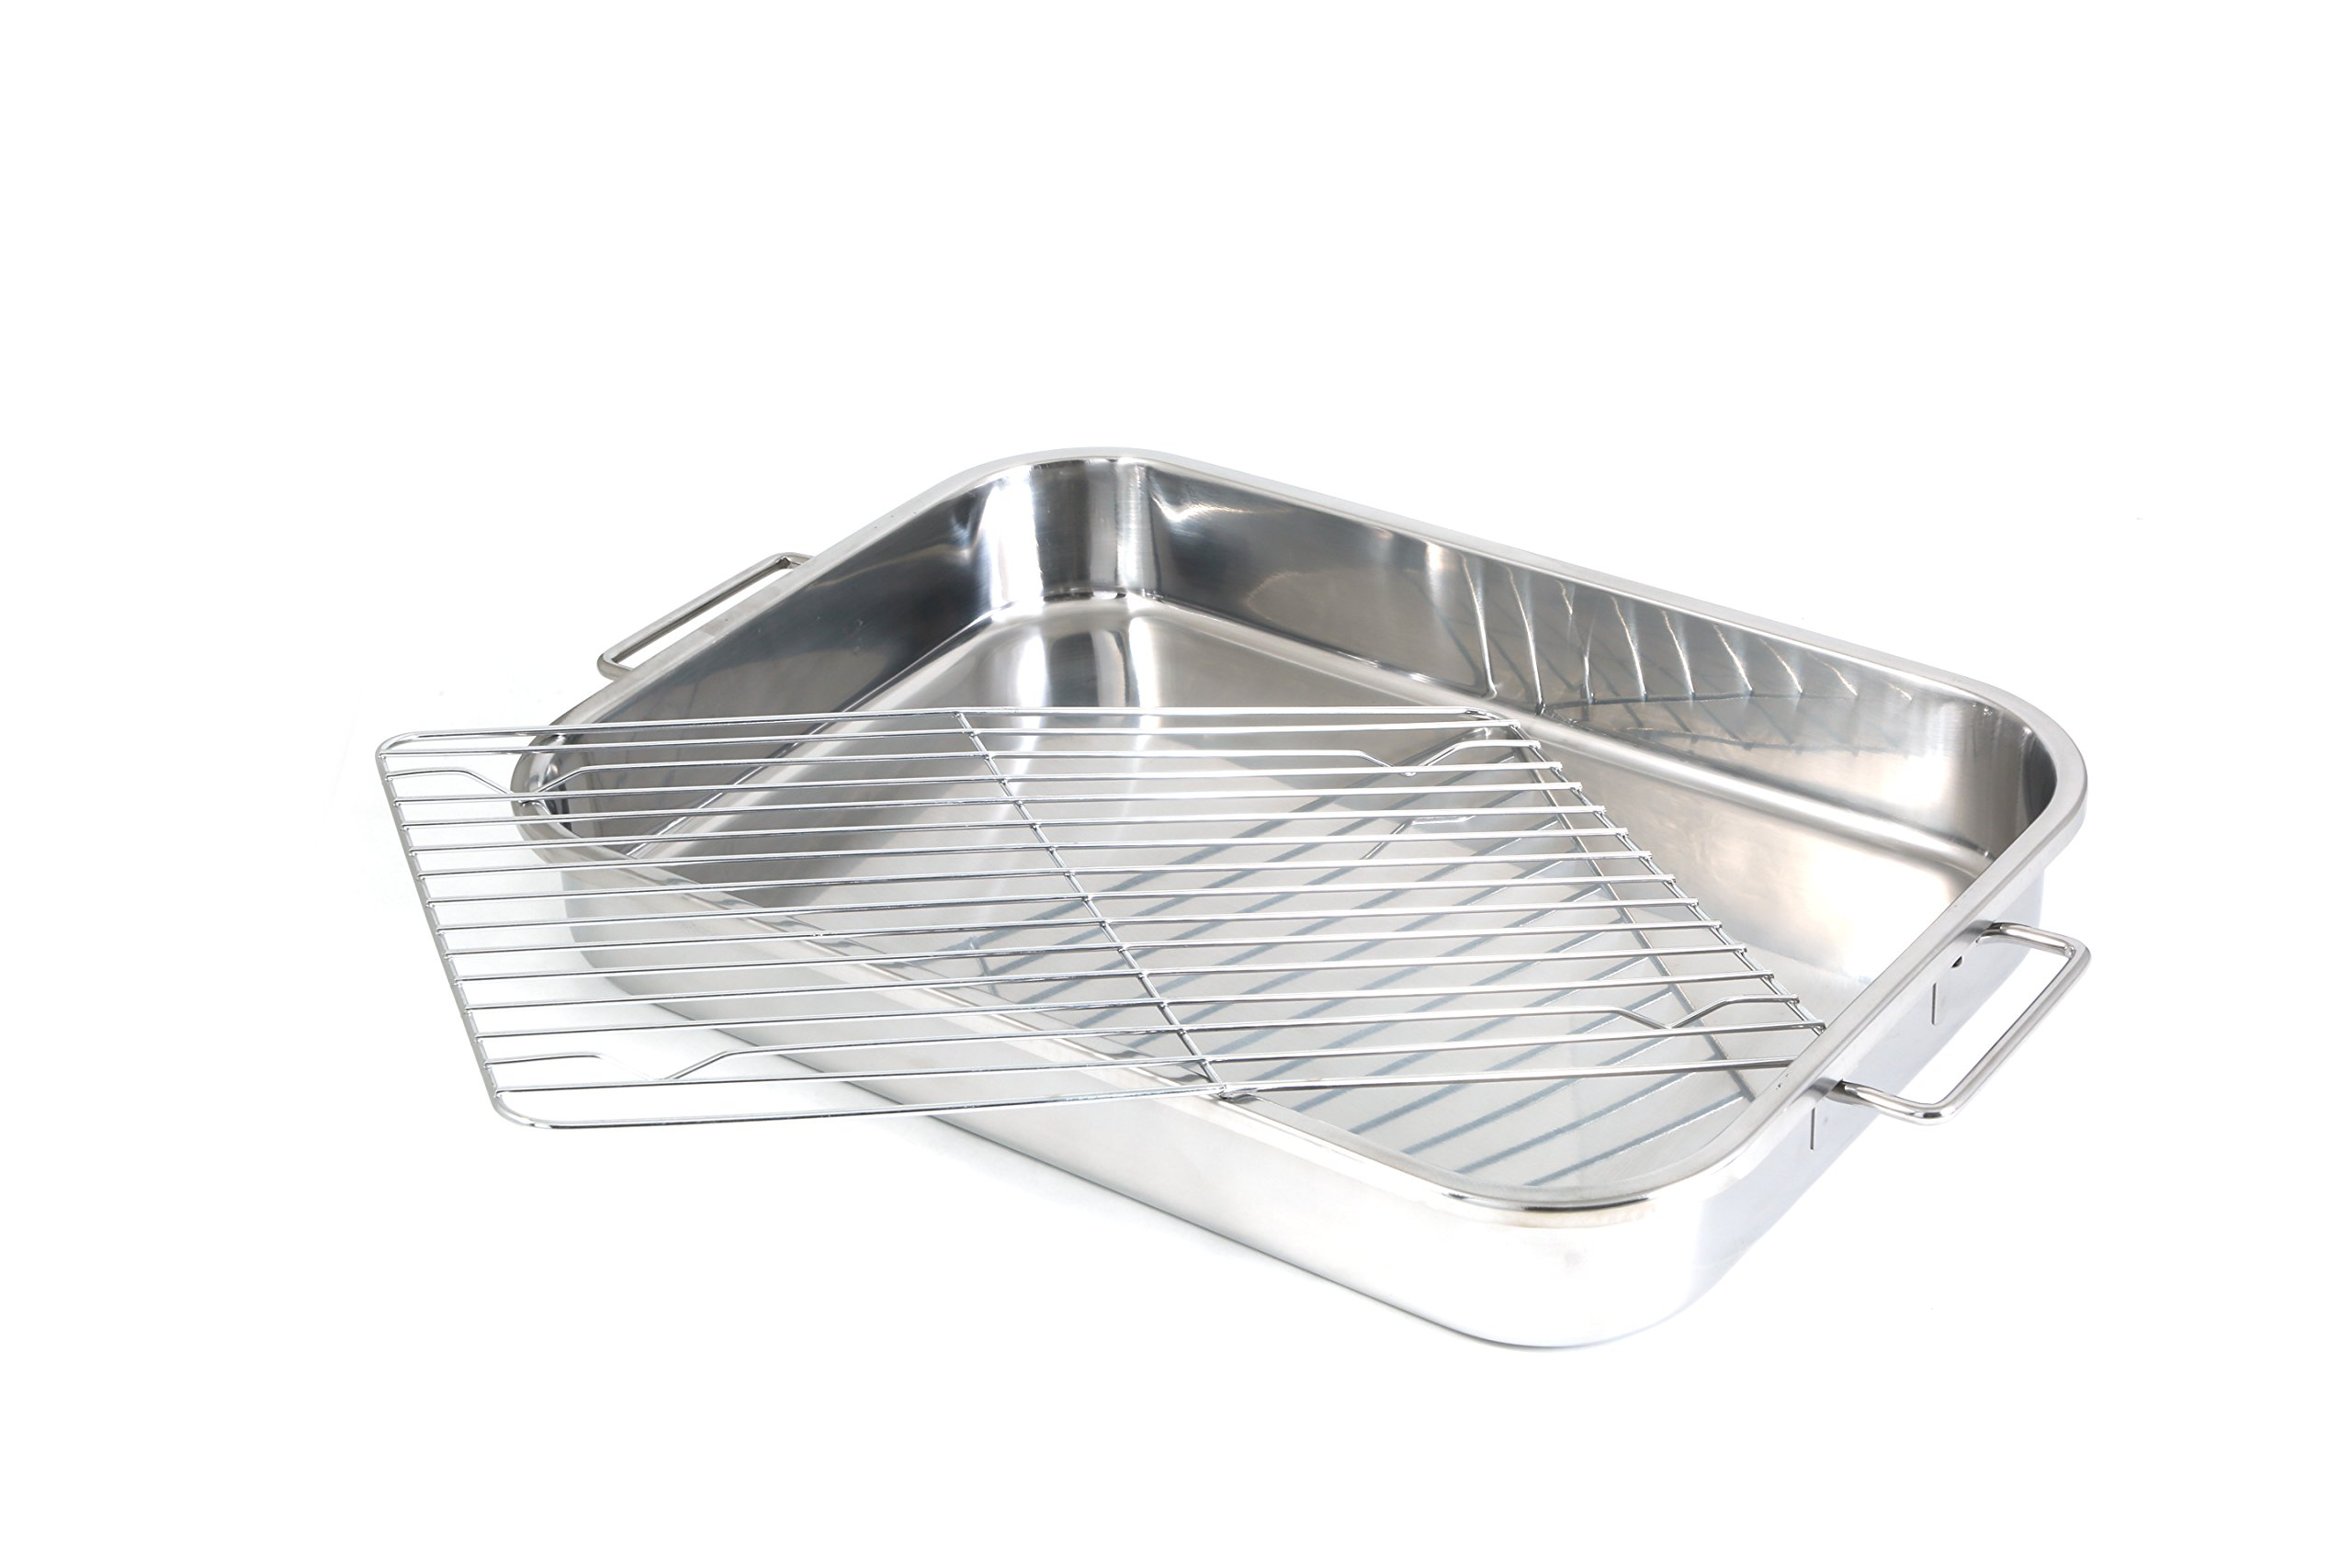 Cook Pro 561 4-Piece All-in-1 Lasagna and Roasting Pan by Cook Pro (Image #3)